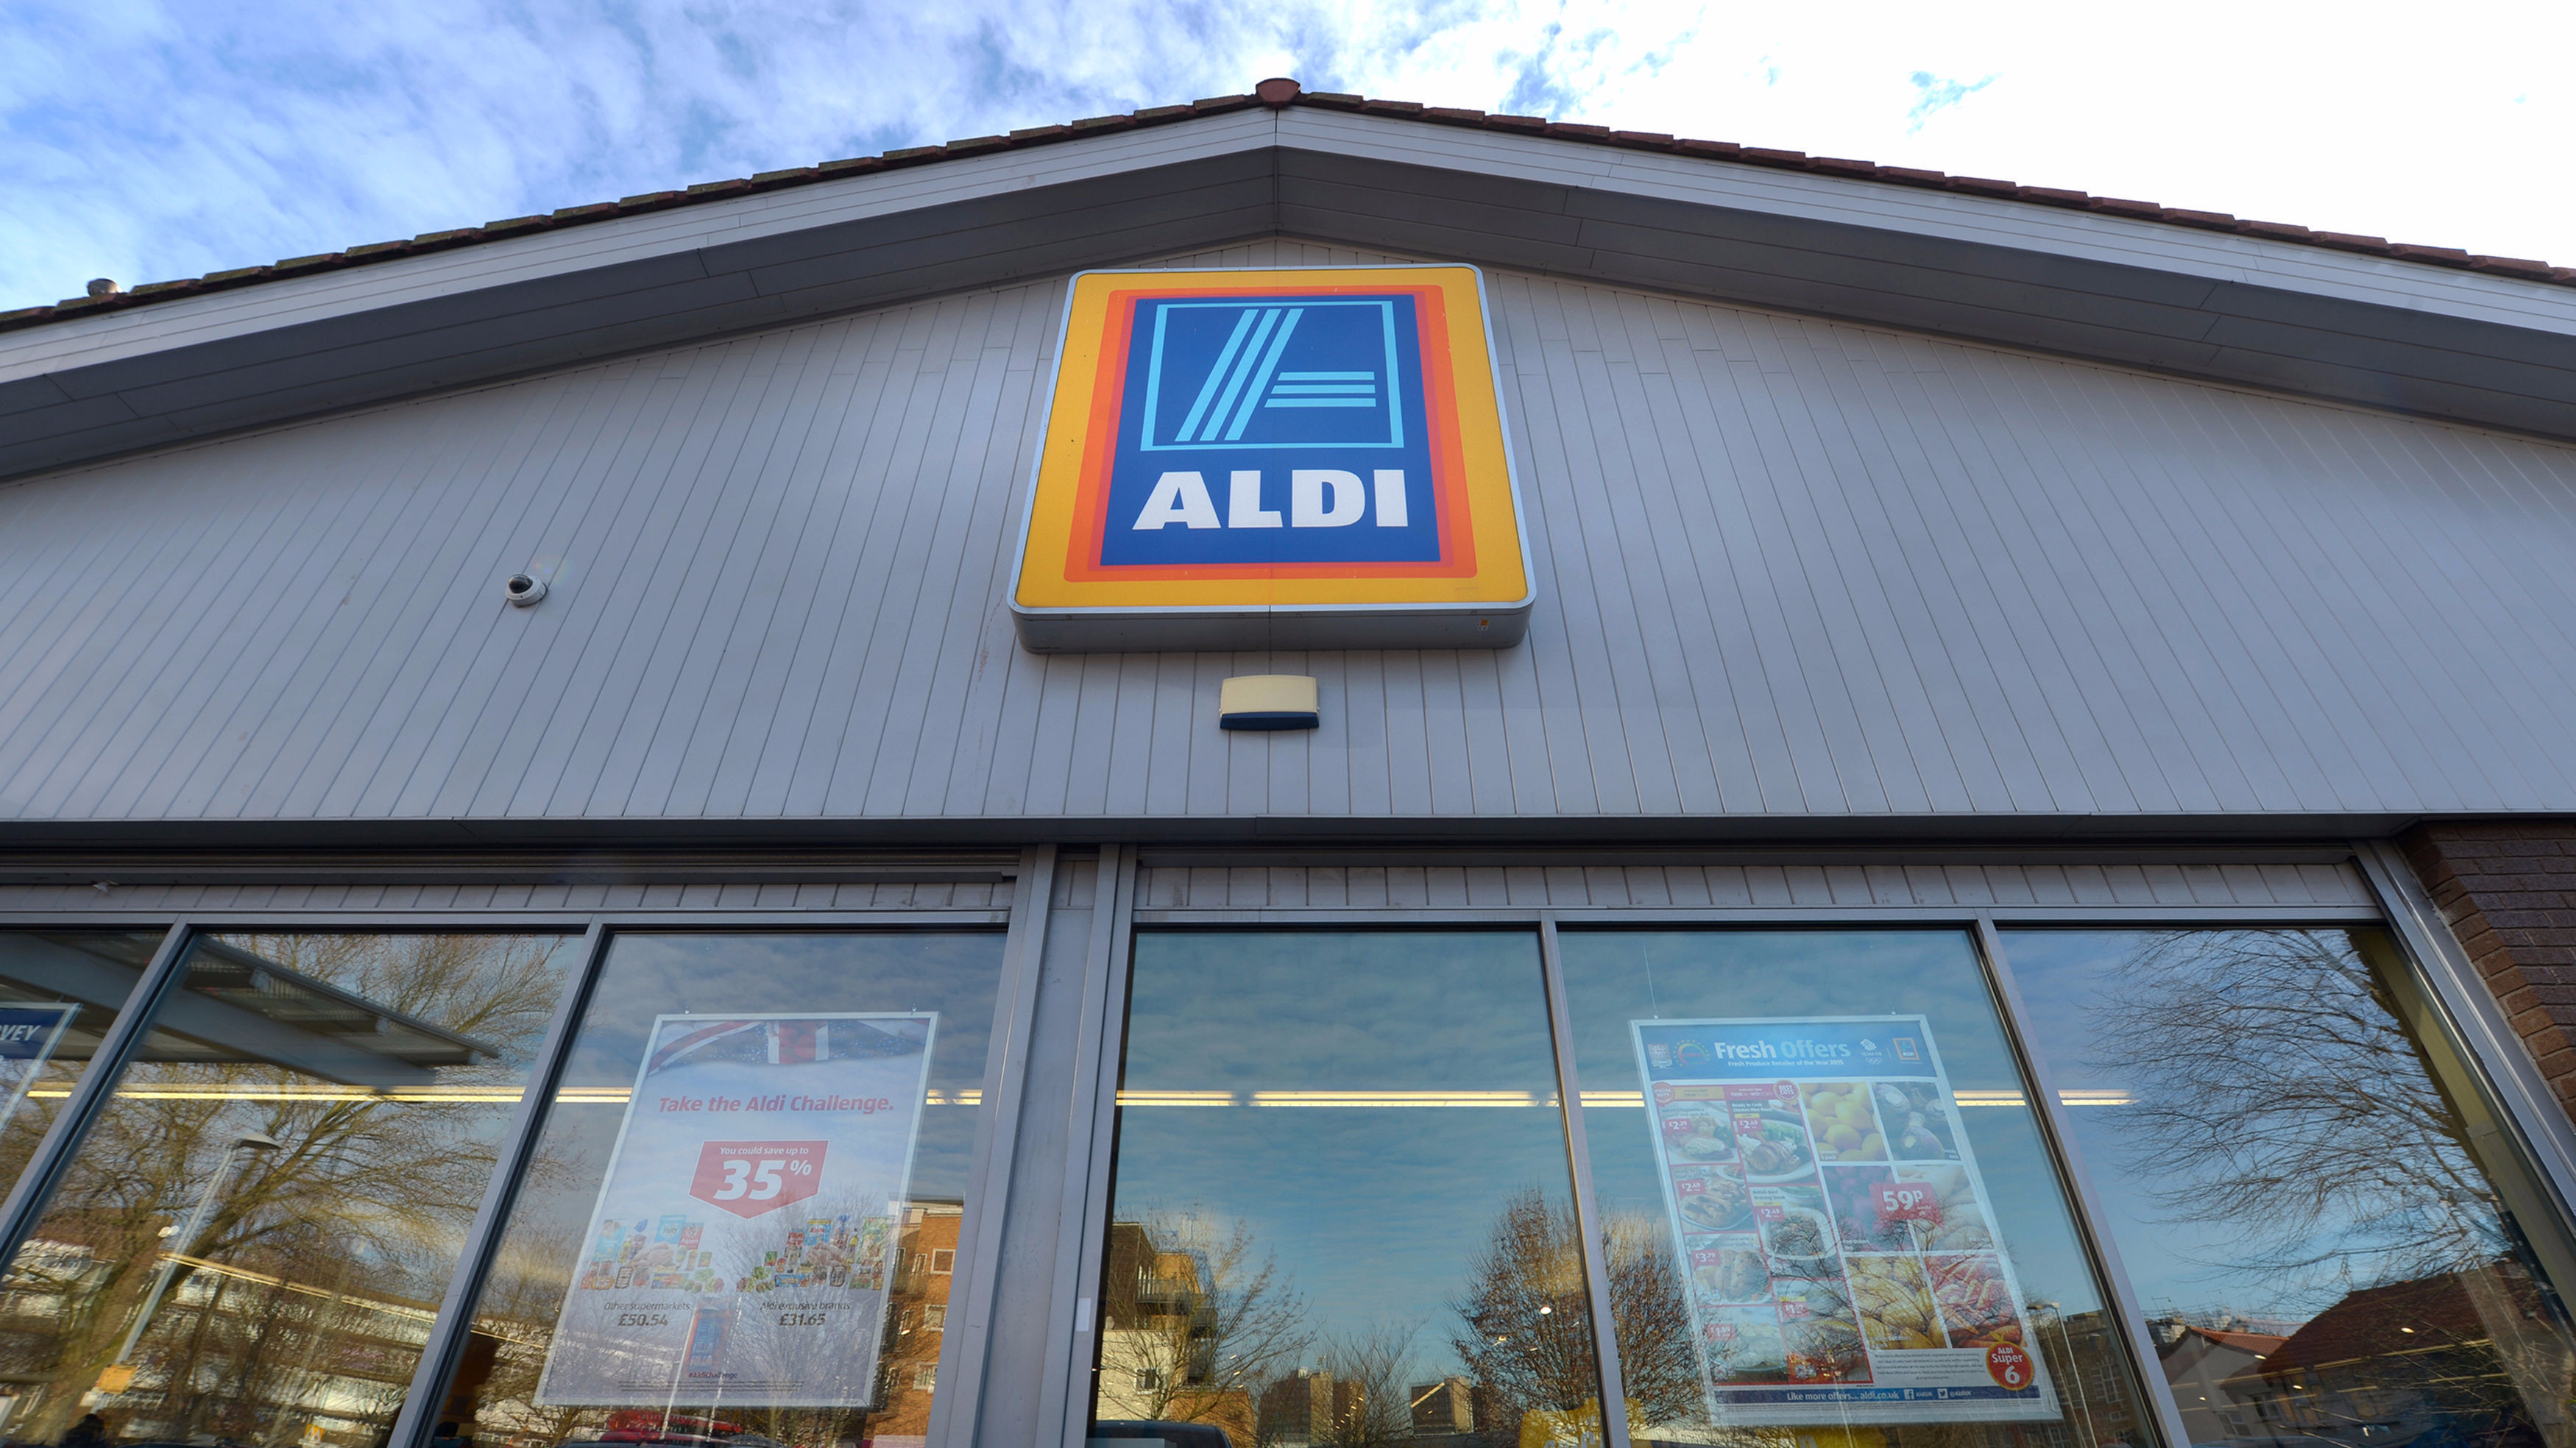 Aldi Is Giving Away Unsold Food To Those In Need On Christmas Eve